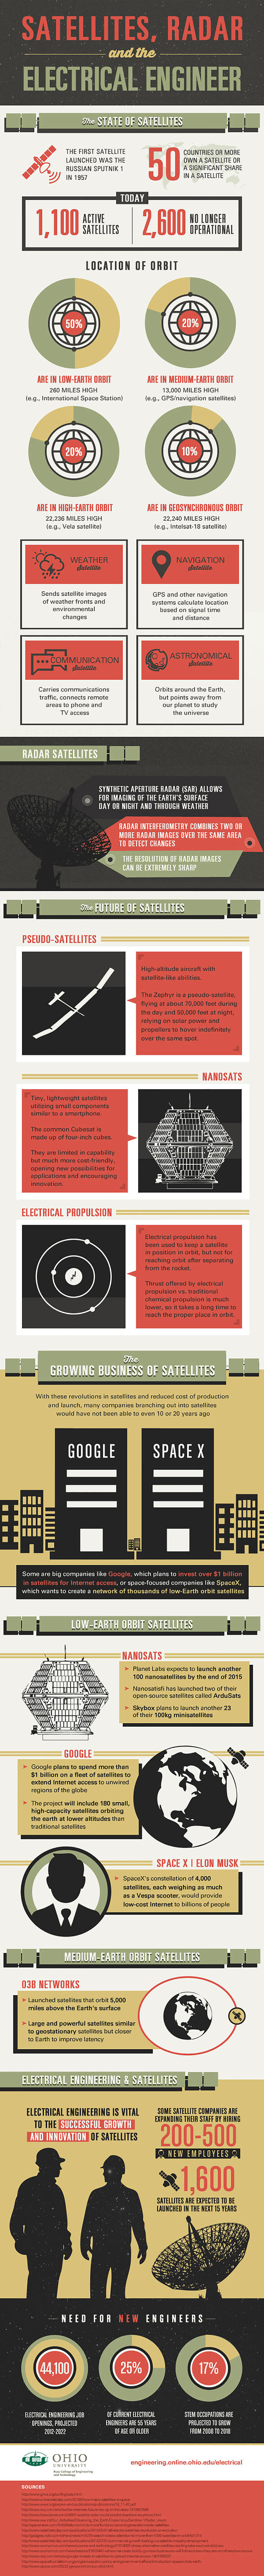 Satellites, Radar, and the Electrical Engineer infographic